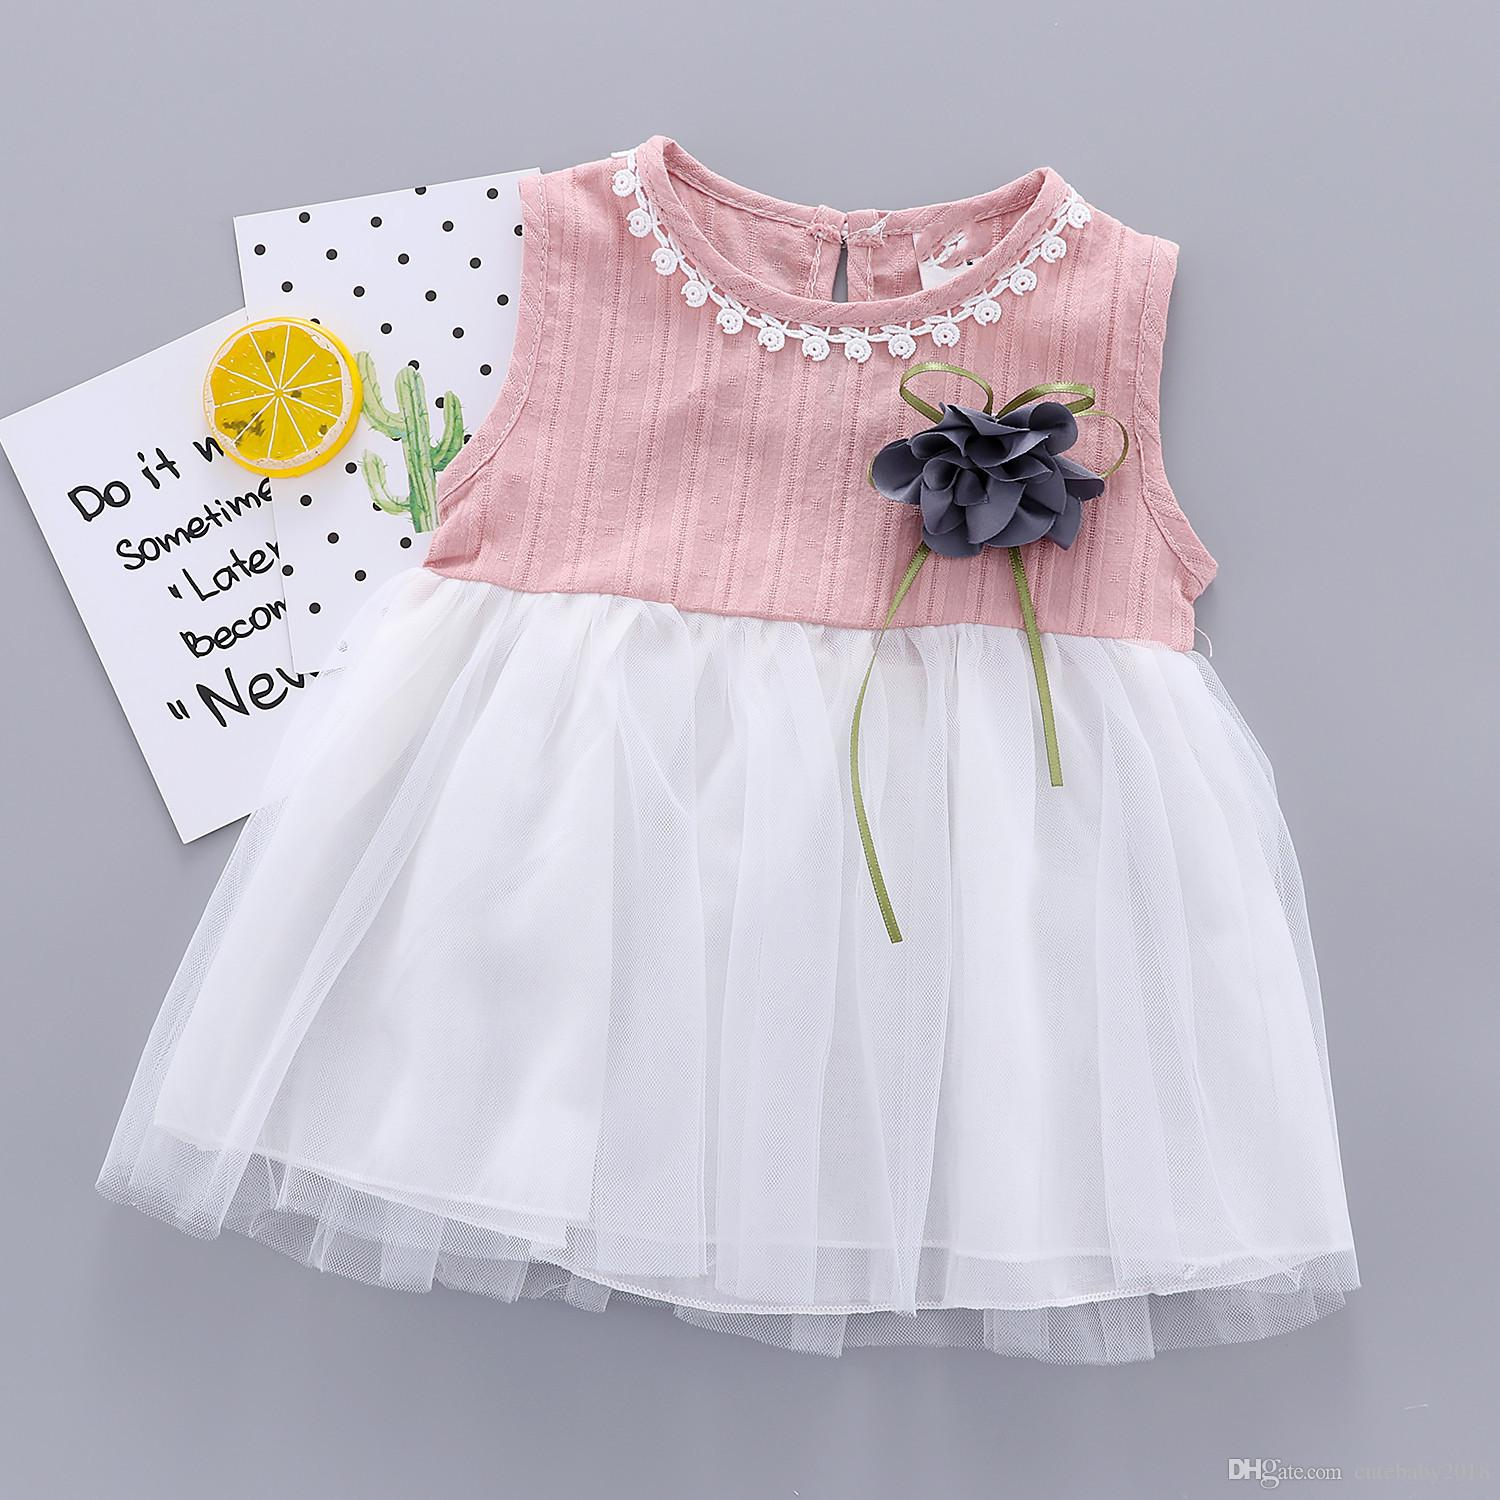 b1c6f79a2bc09 Summer Collection For Baby Girl